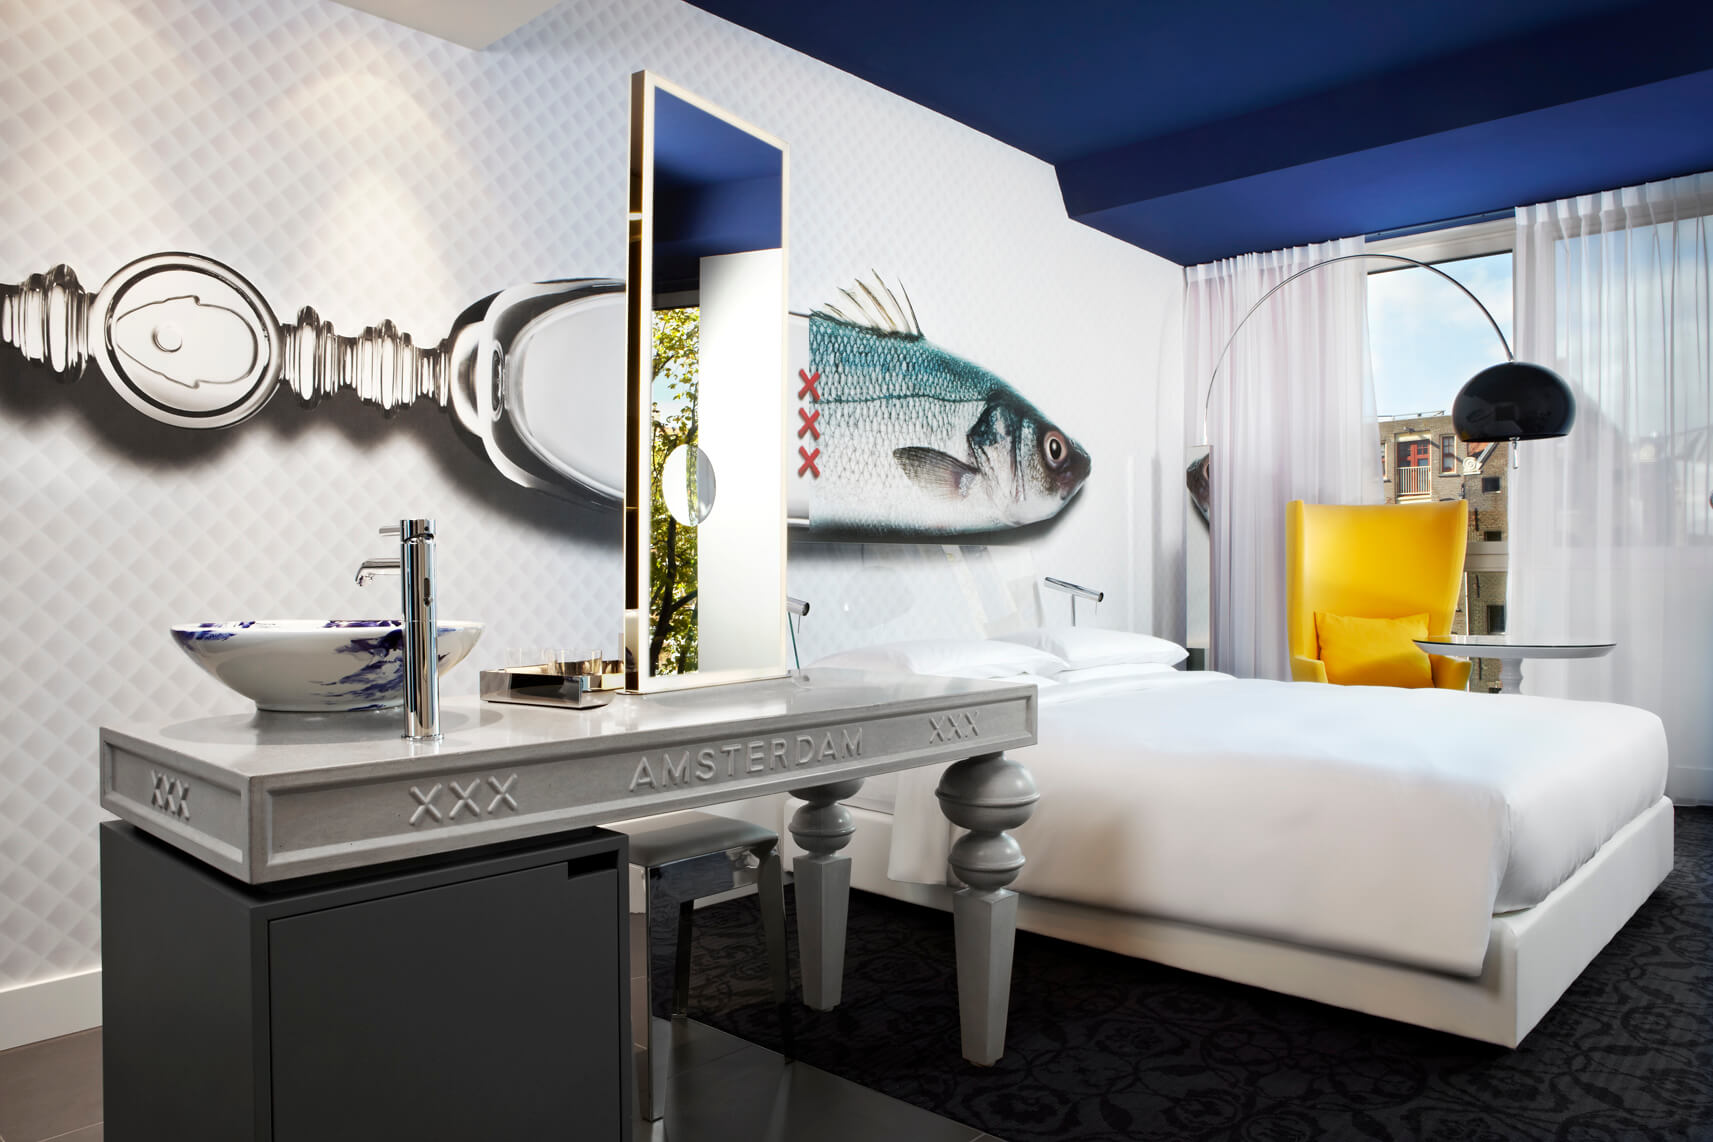 andaz, andaz hotel, amsterdam, high end, expensive, quirky, fun, cool, bedroom, suite, fish